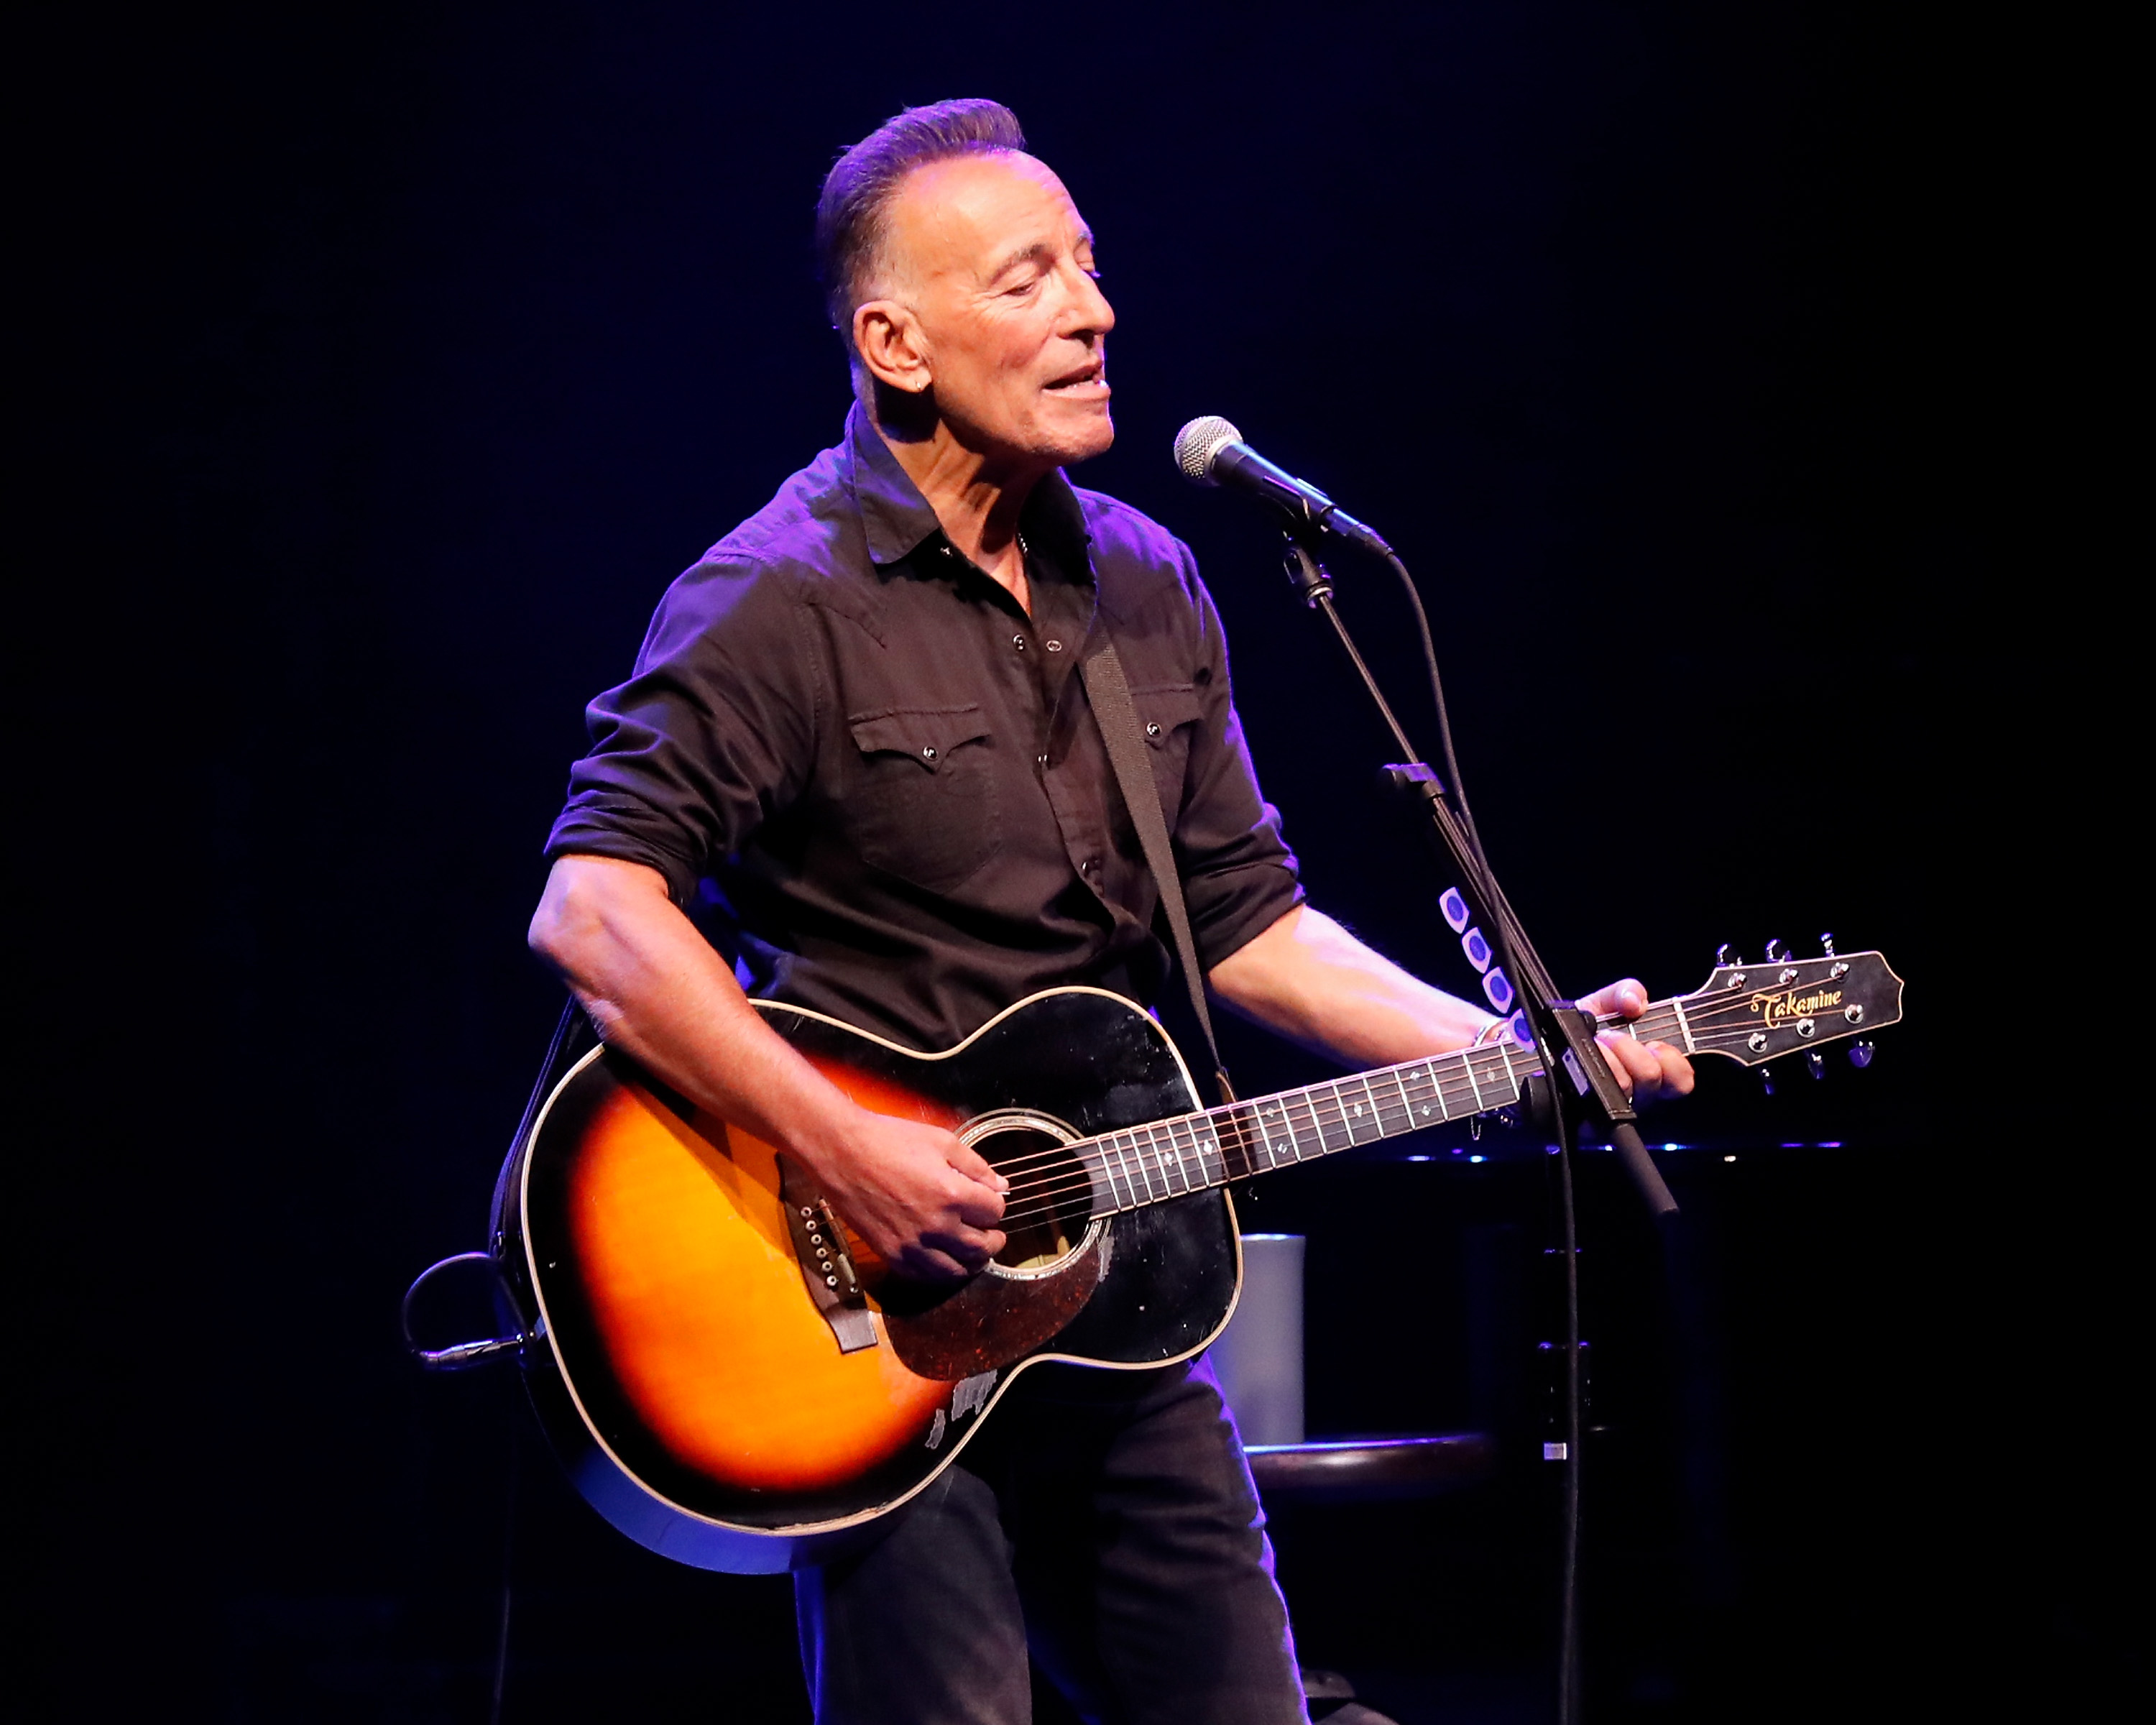 Bruce Springsteen performs during reopening night of  Springsteen on Broadway  for a full-capacity, vaccinated audience at St. James Theatre on June 26, 2021 in New York City.